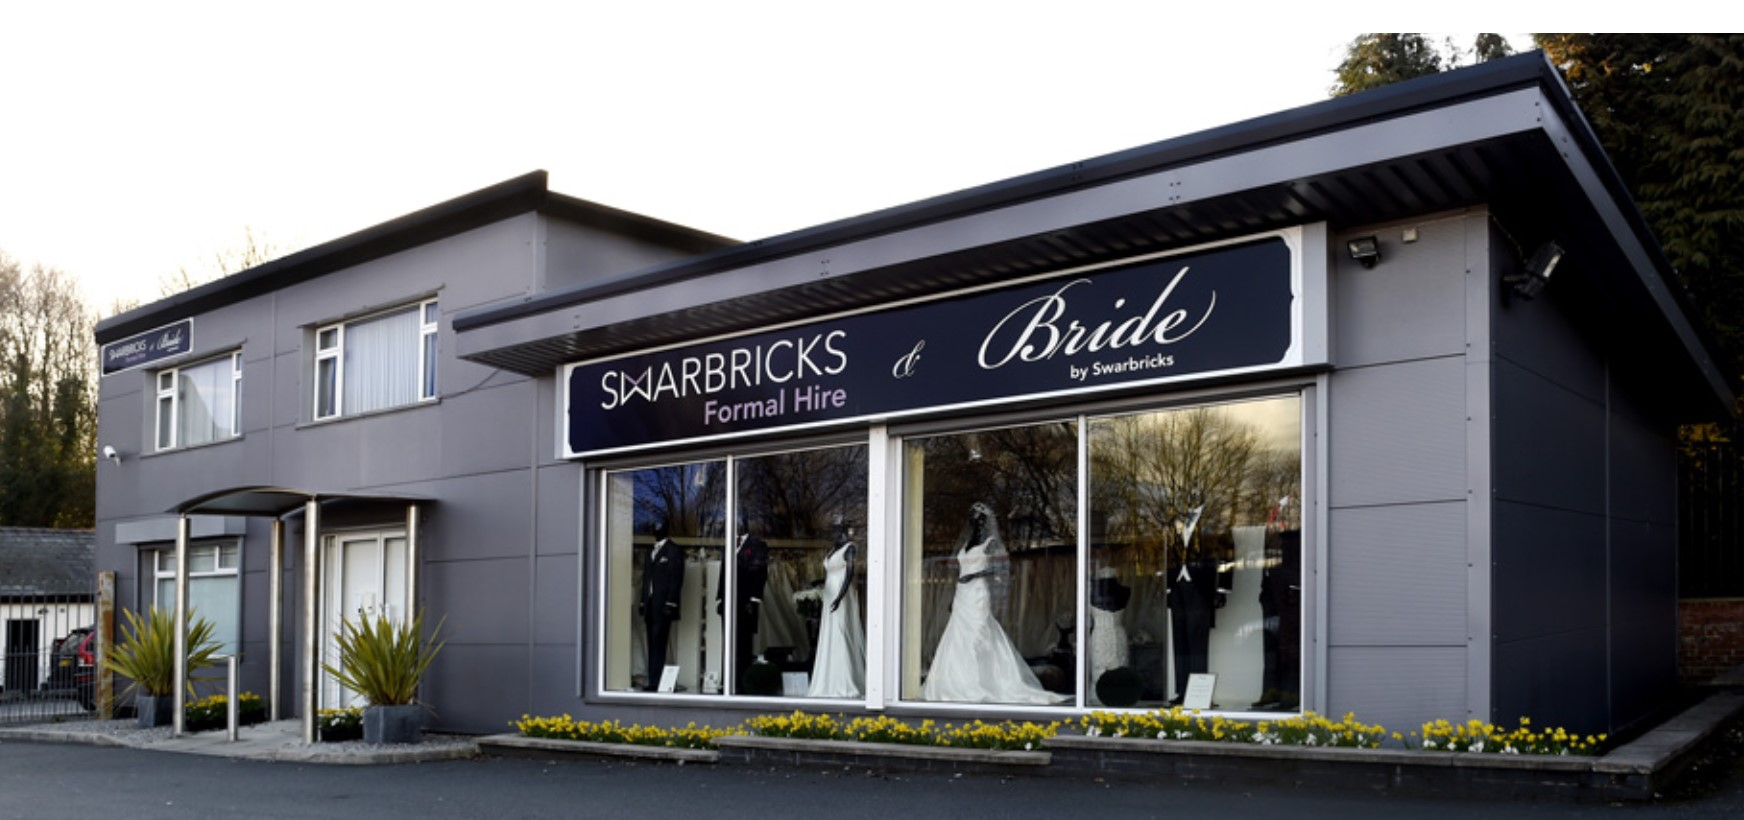 Swarbricks Suit Hire & Bridal Shop